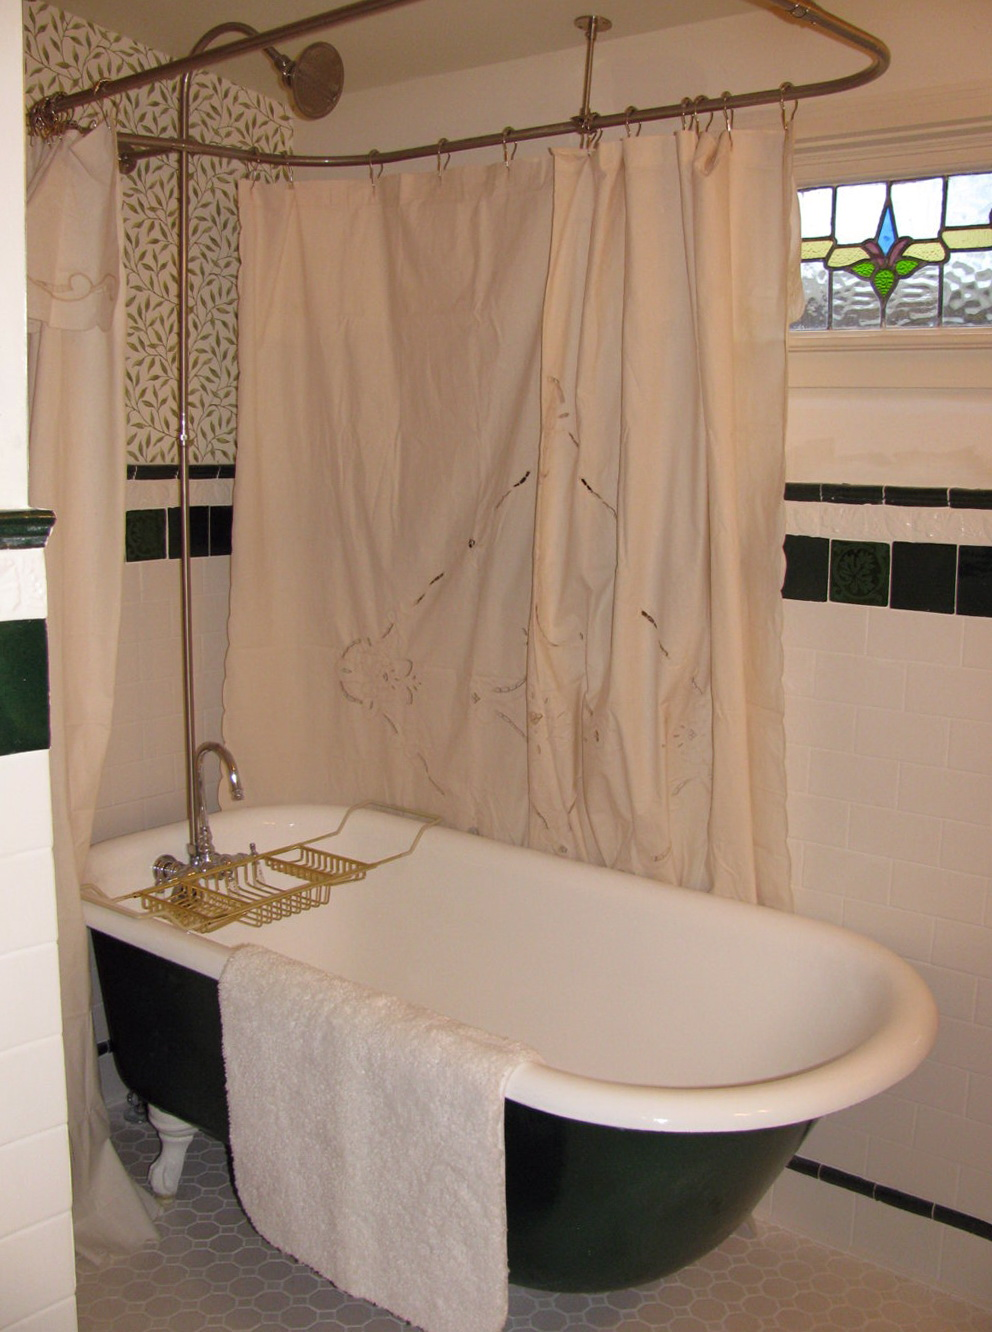 Shower Curtain Size For Clawfoot Tub